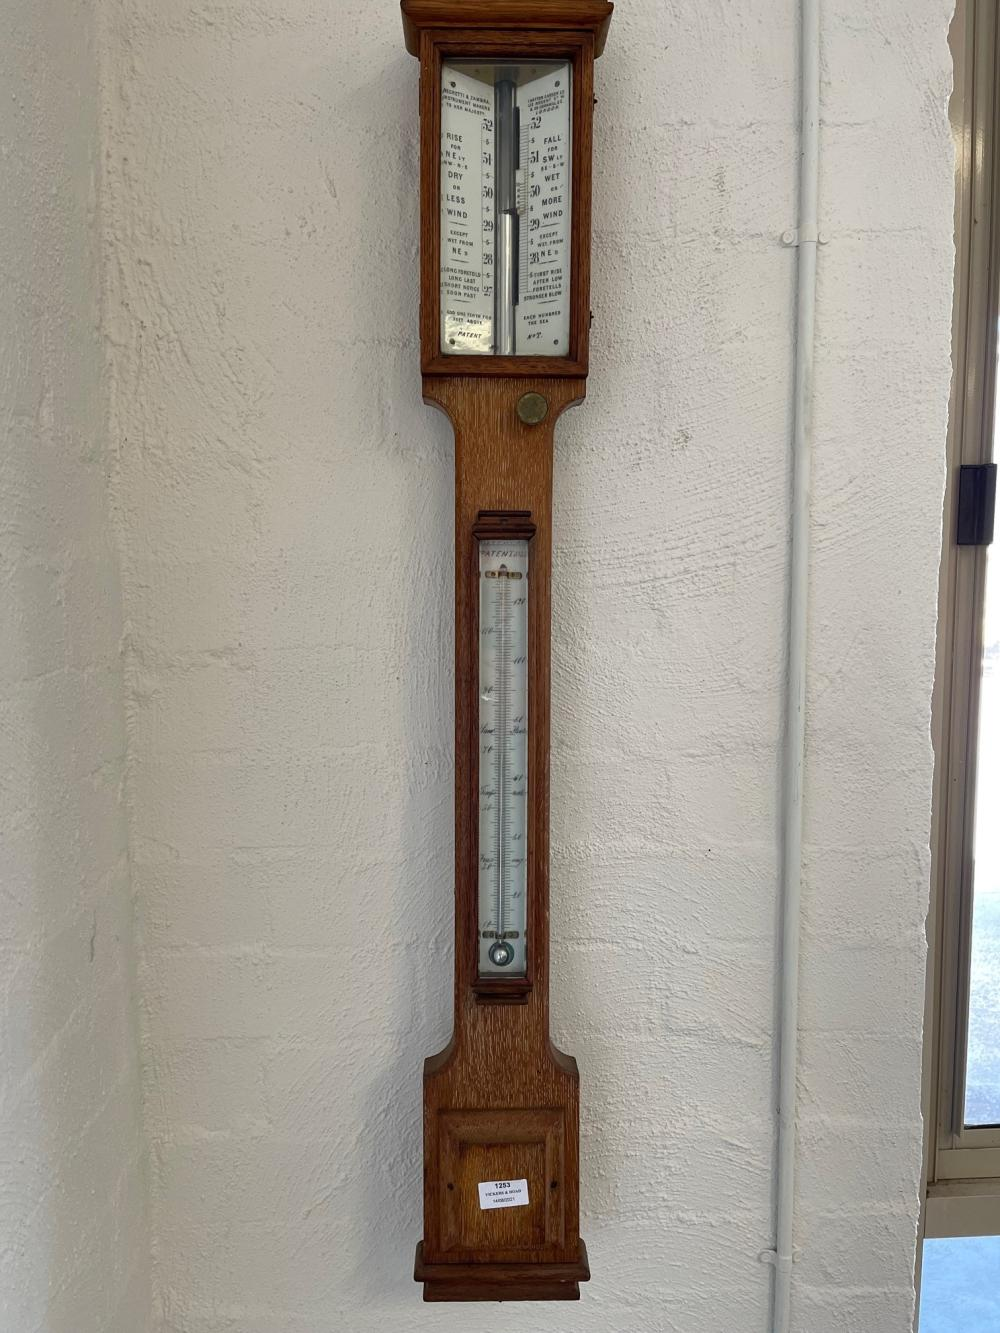 Fine antique English oak cased stick barometer, by Negretti and Zambre makers to her Majesty. Hatton Garden Long address, intact with mercury, approx 102cm H